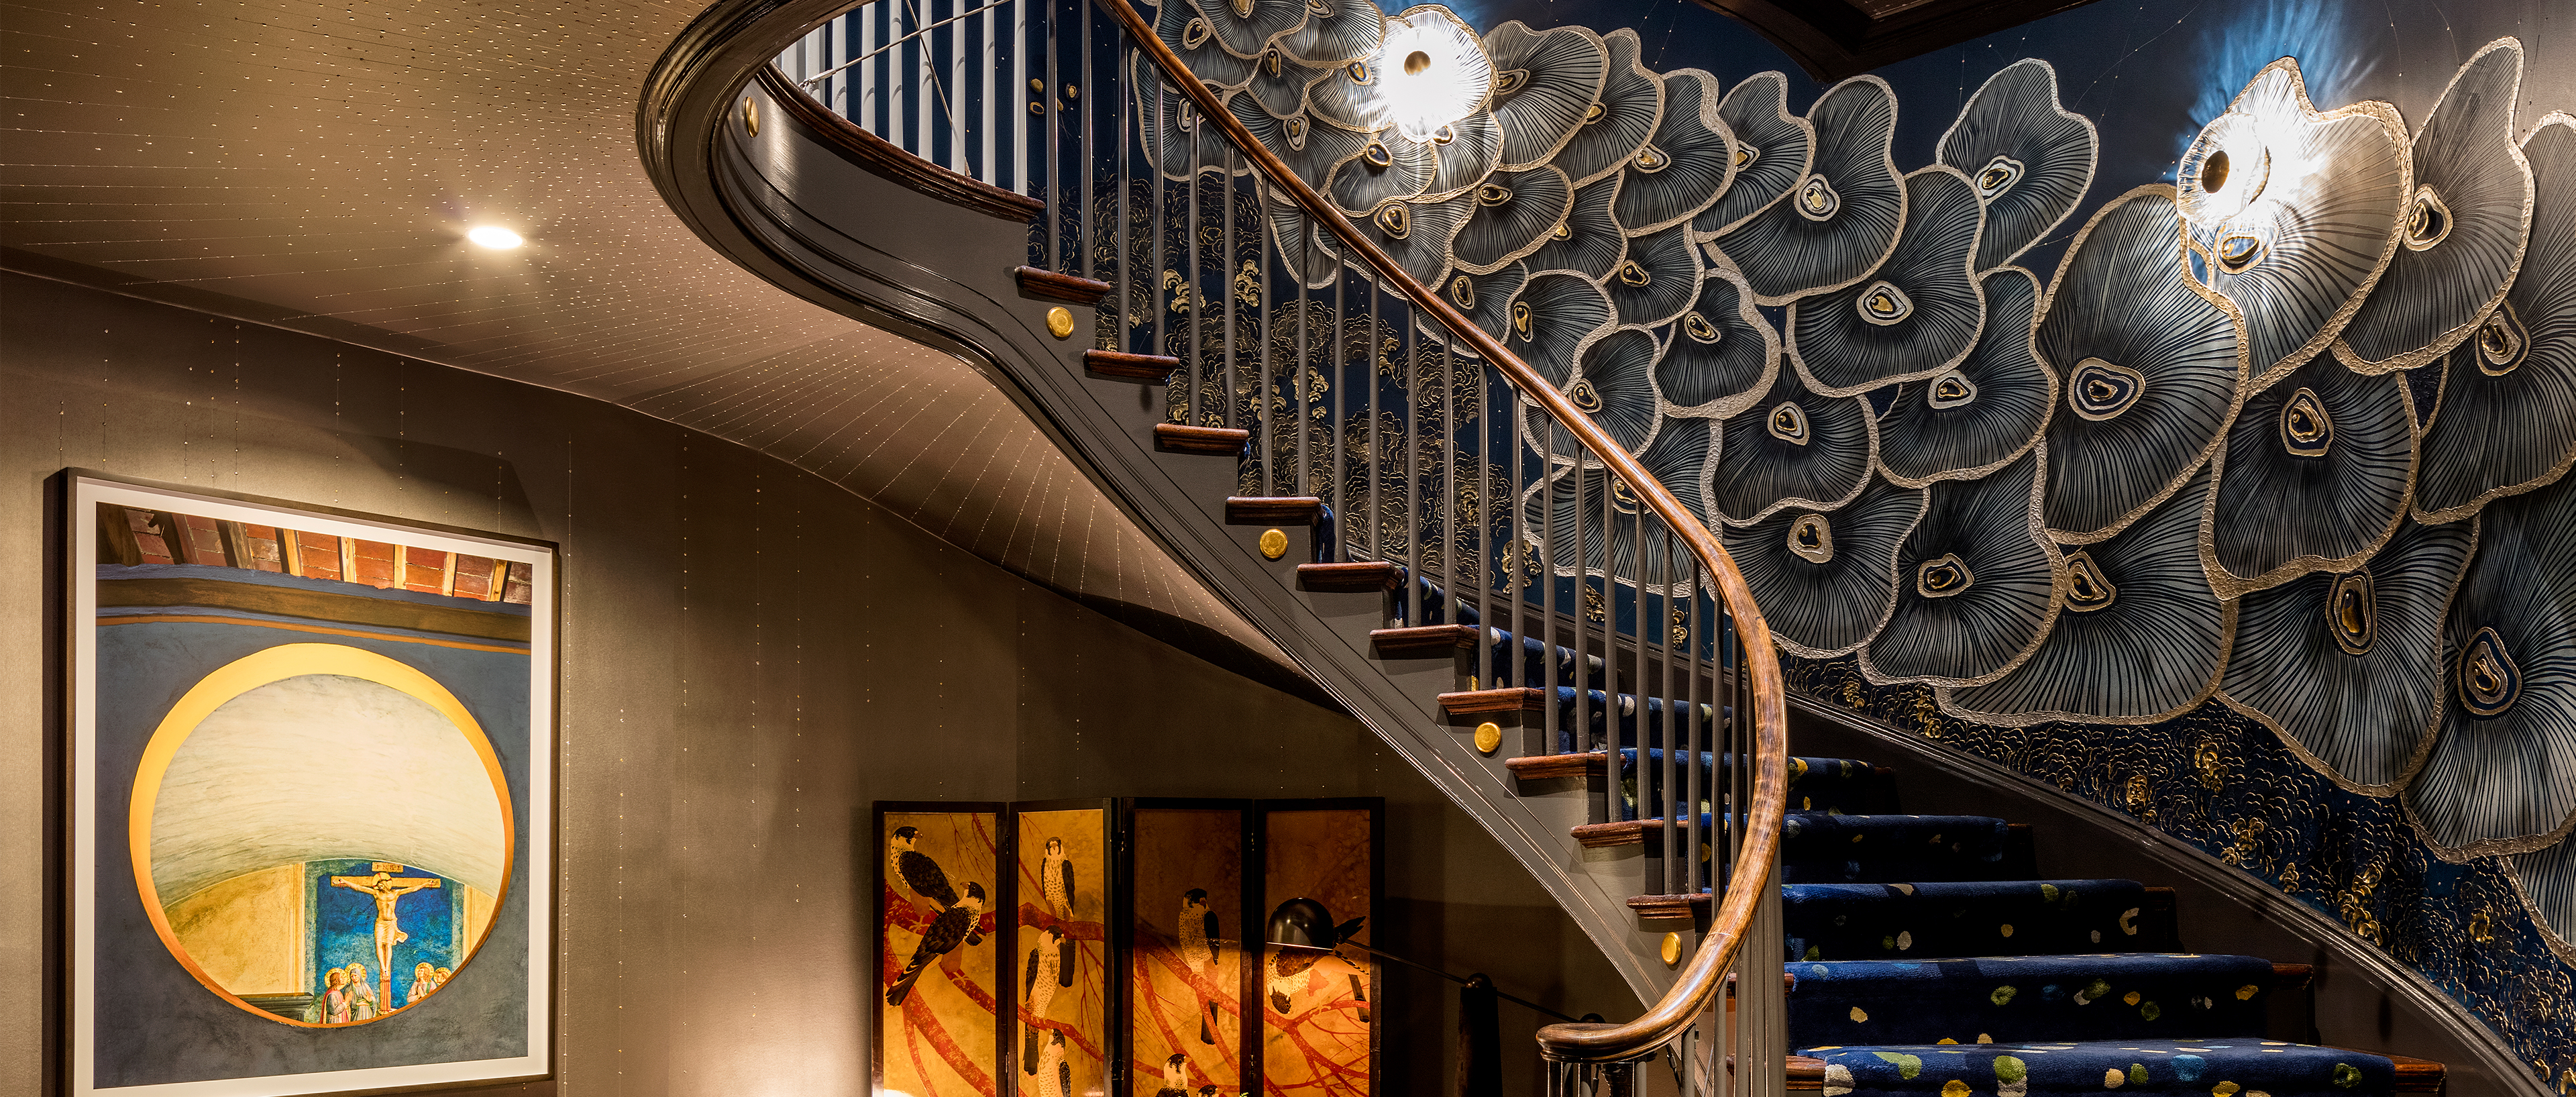 Richard Rabel's design for a stair well in the Kips Bay Decorator Show House